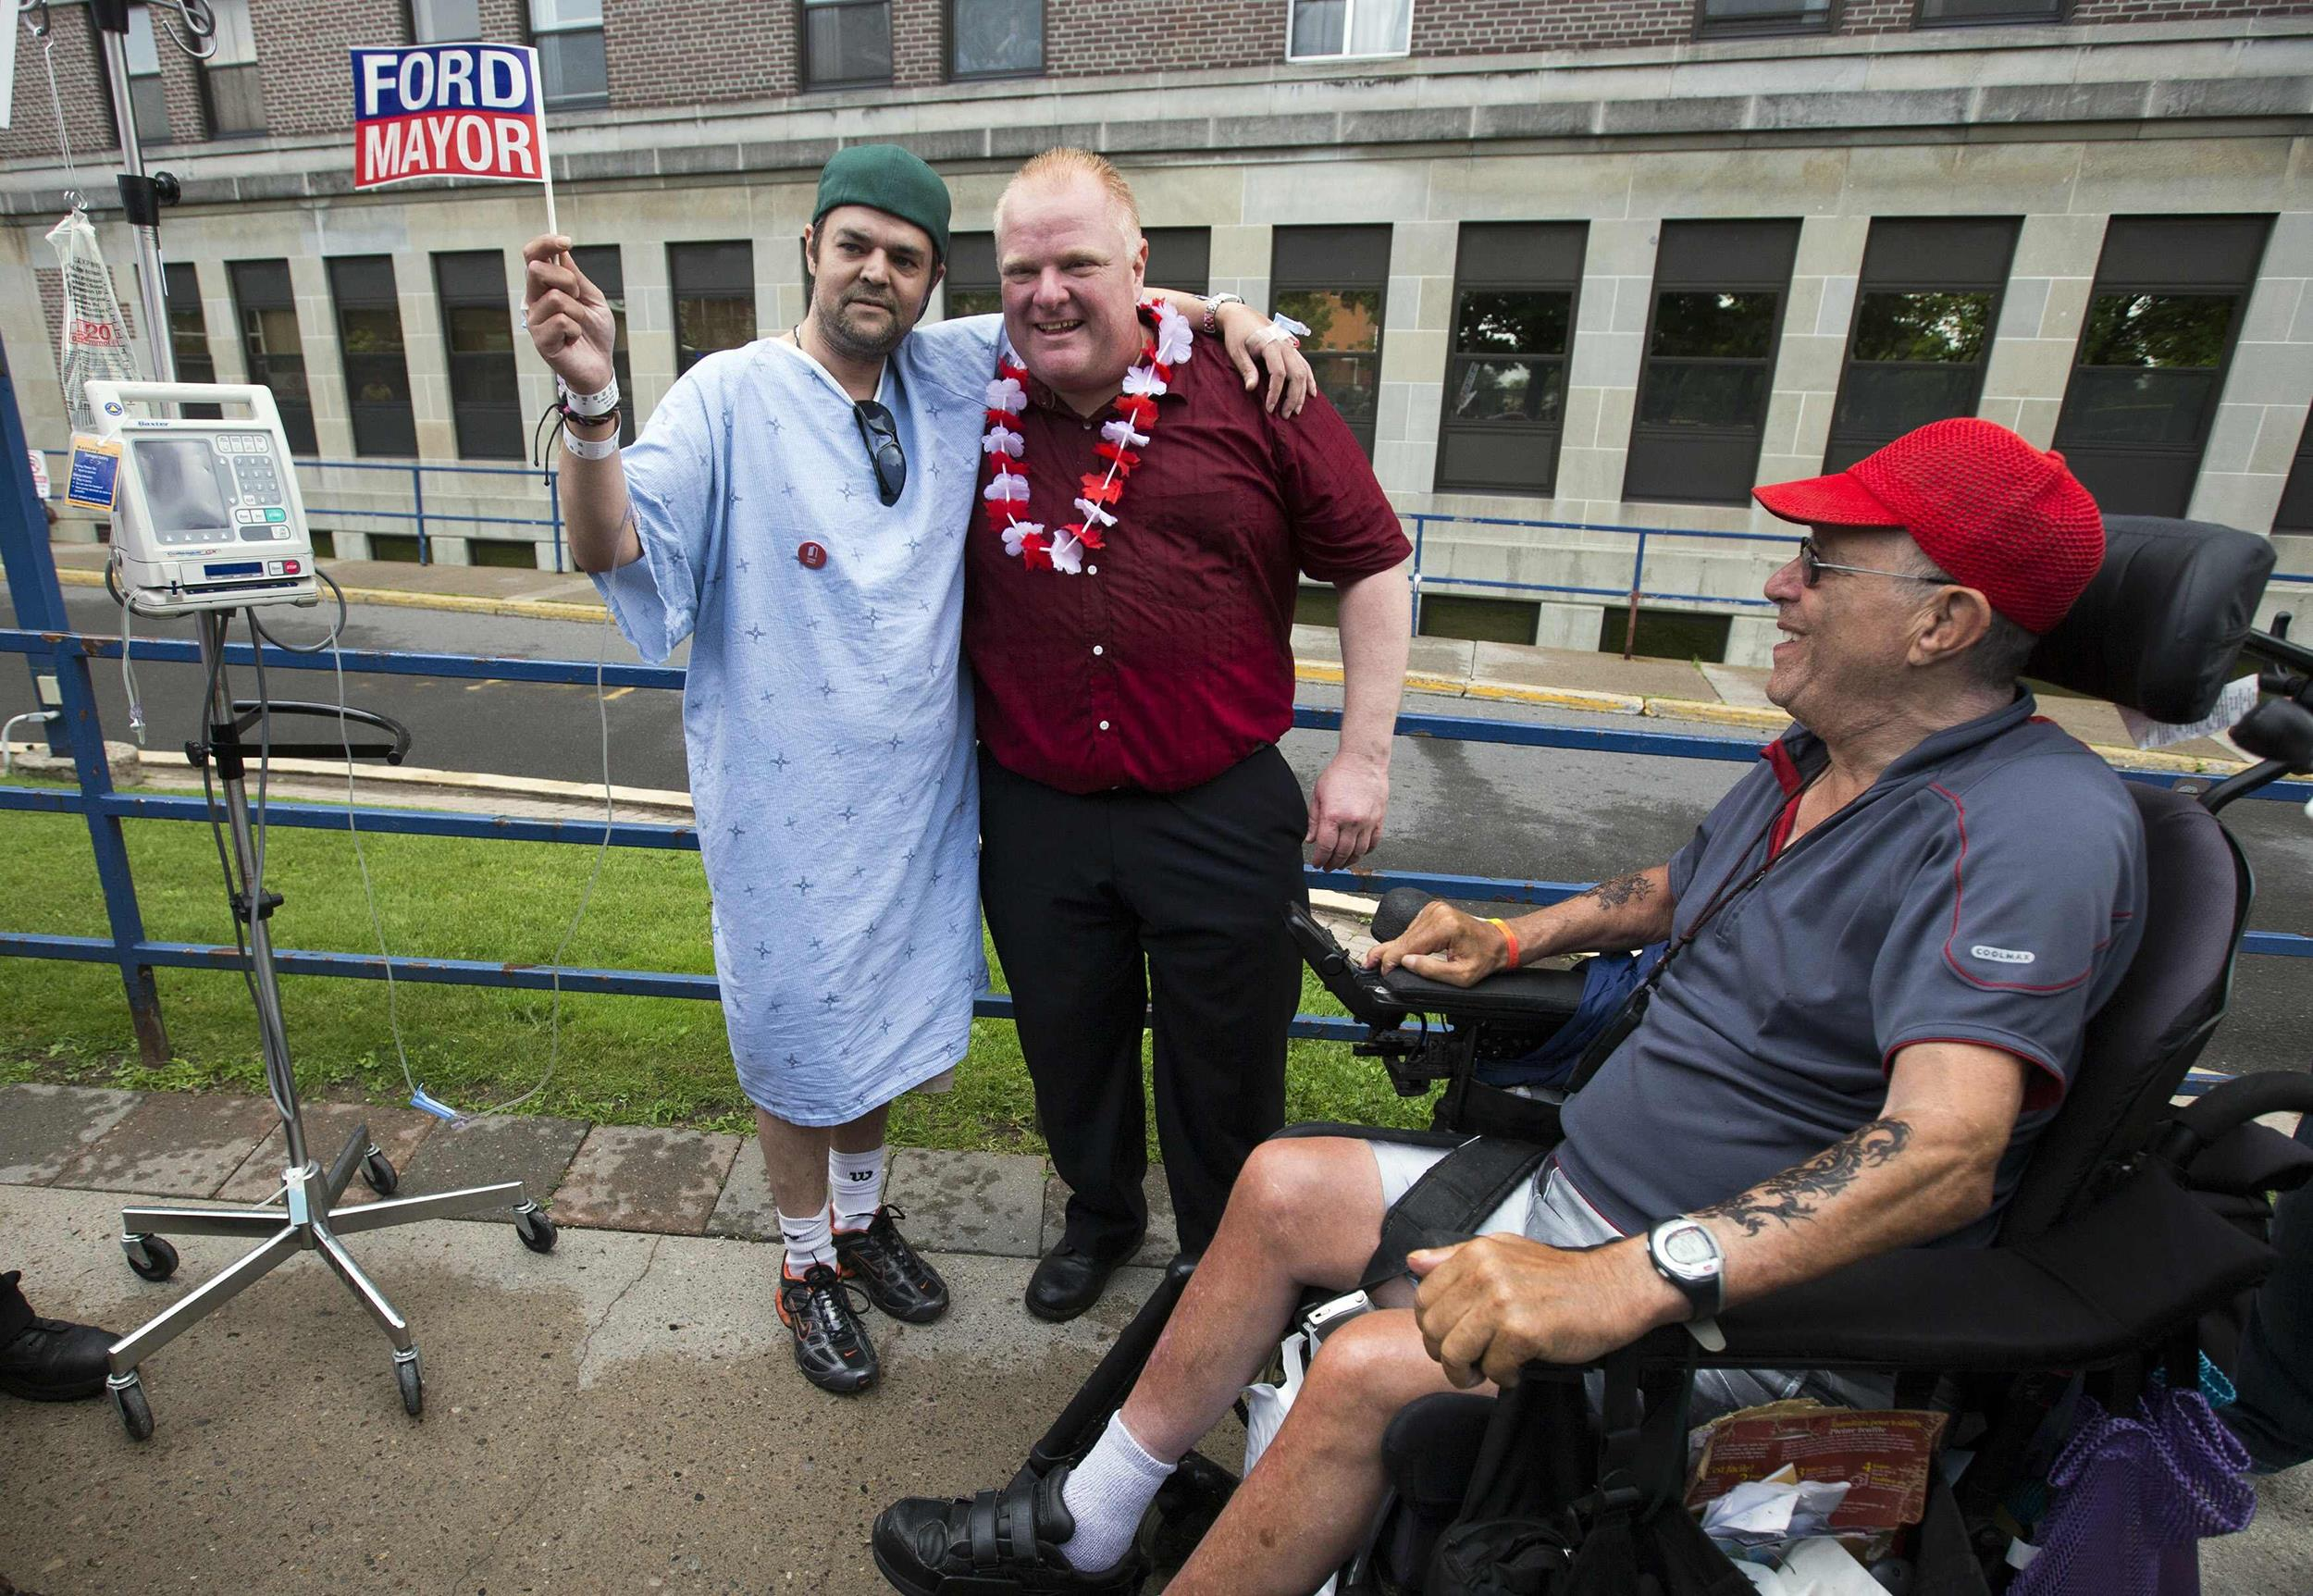 Image: Toronto Mayor Rob Ford poses with a hospital patient as he takes part in parade in his first public appearance since returning from a rehabilitation clinic in Toronto